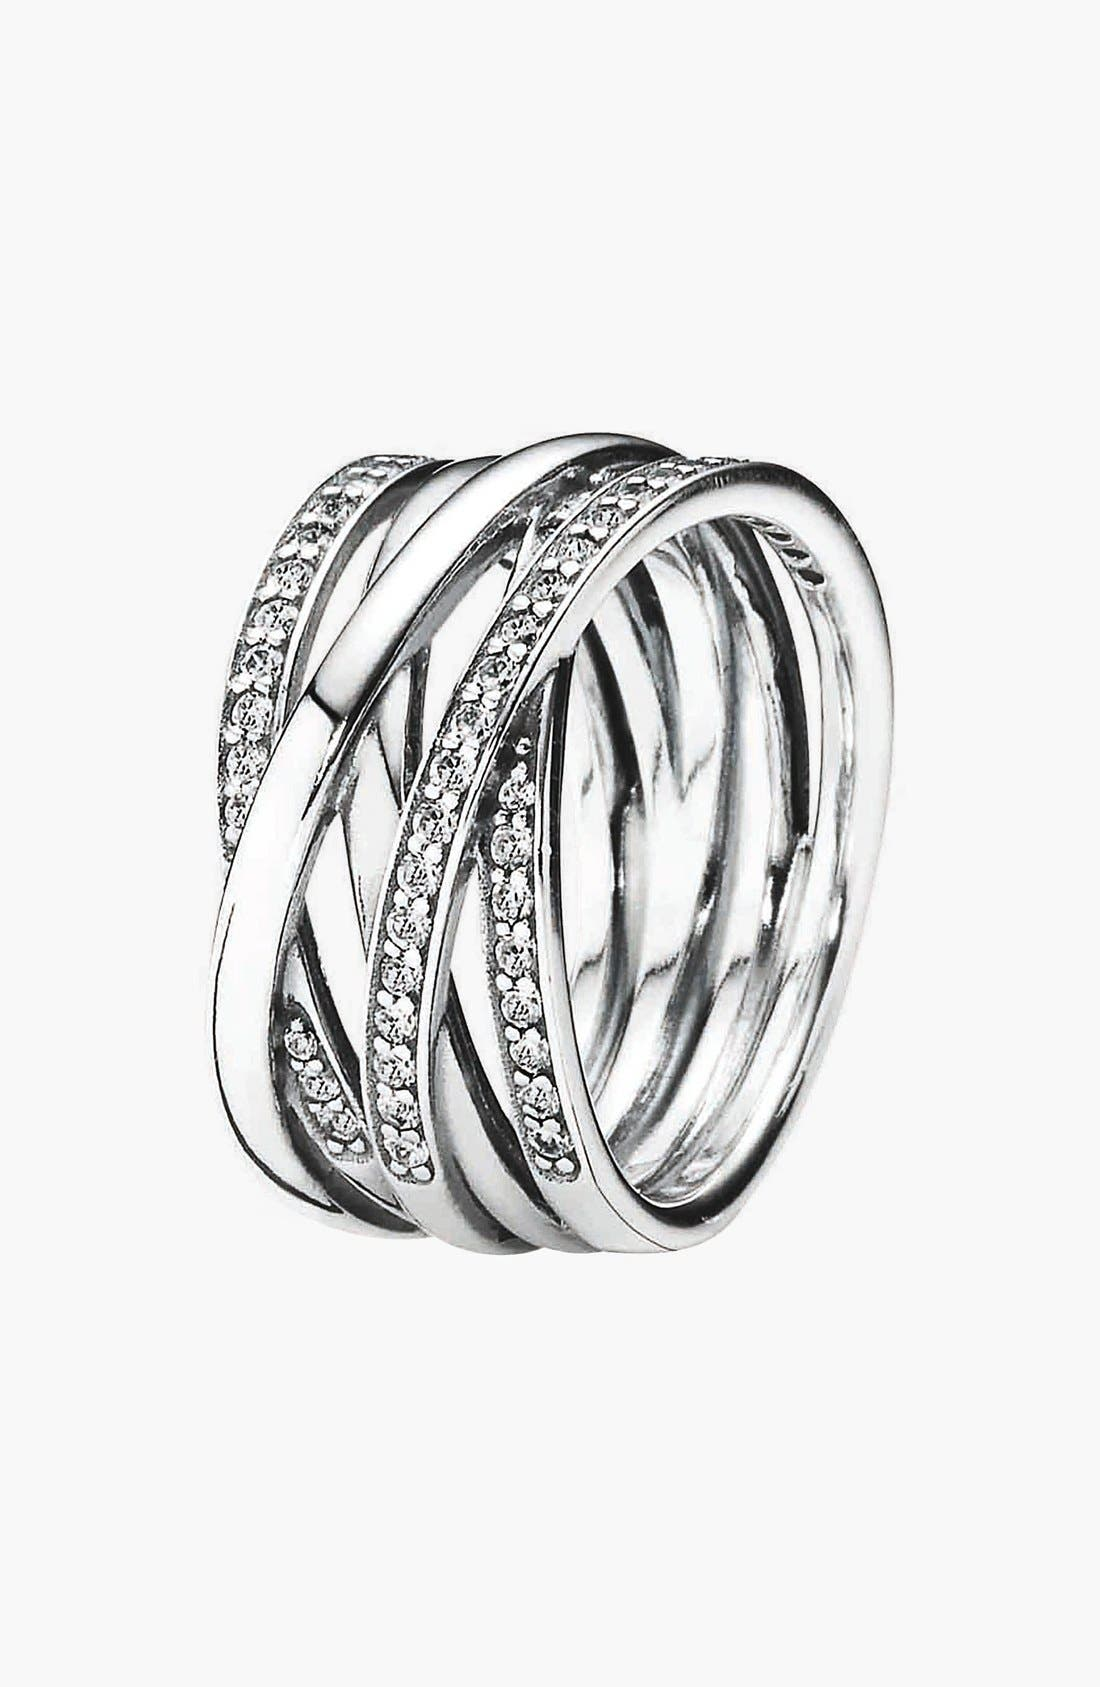 Main Image - PANDORA 'Entwined' Stack Ring